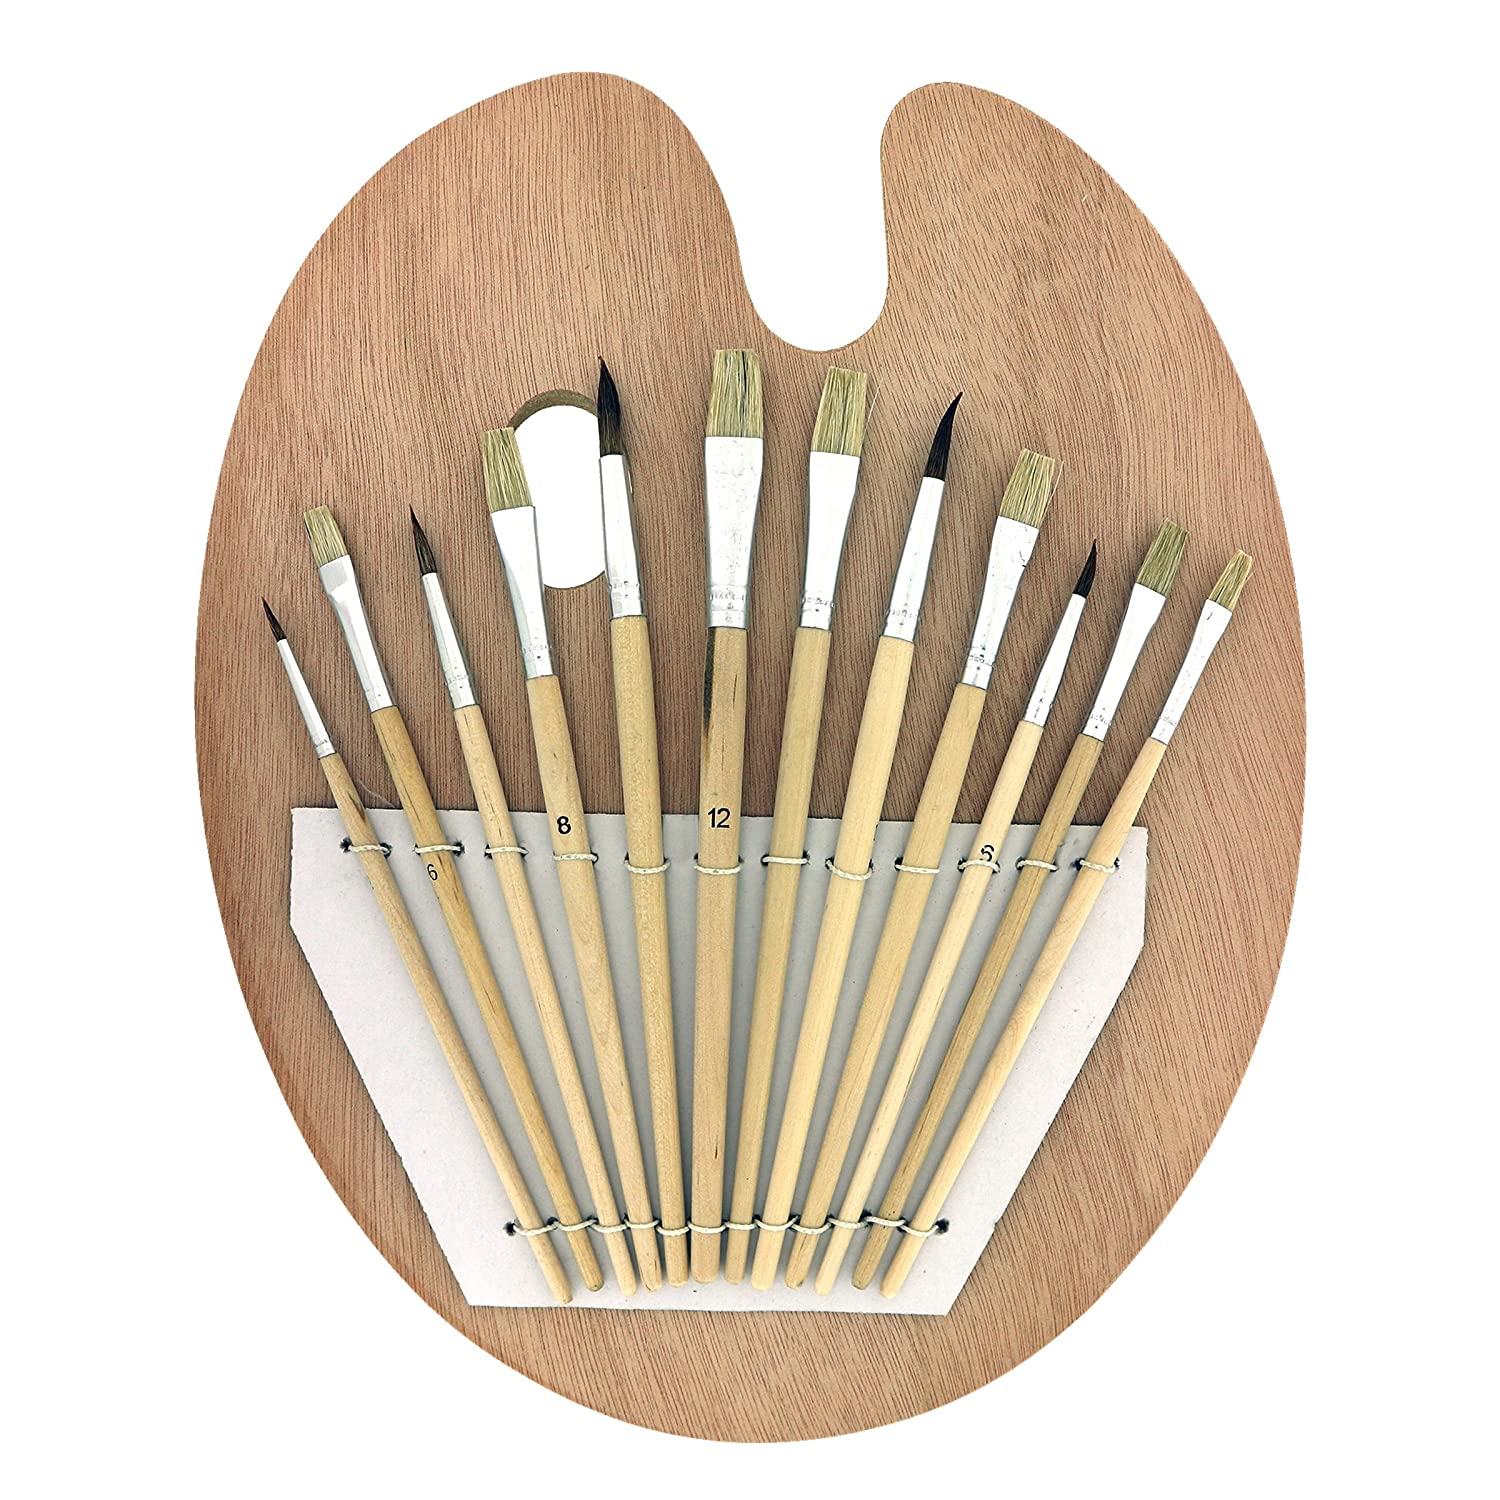 Kurtzy 12piece Wooden Paint Brushes & Palette Set - Wooden art Paint Brush Set Suitable for Use with Acrylic Paint - Perfect Art and Craft Kit for Professional and Amateur Projects PB-6022-UK